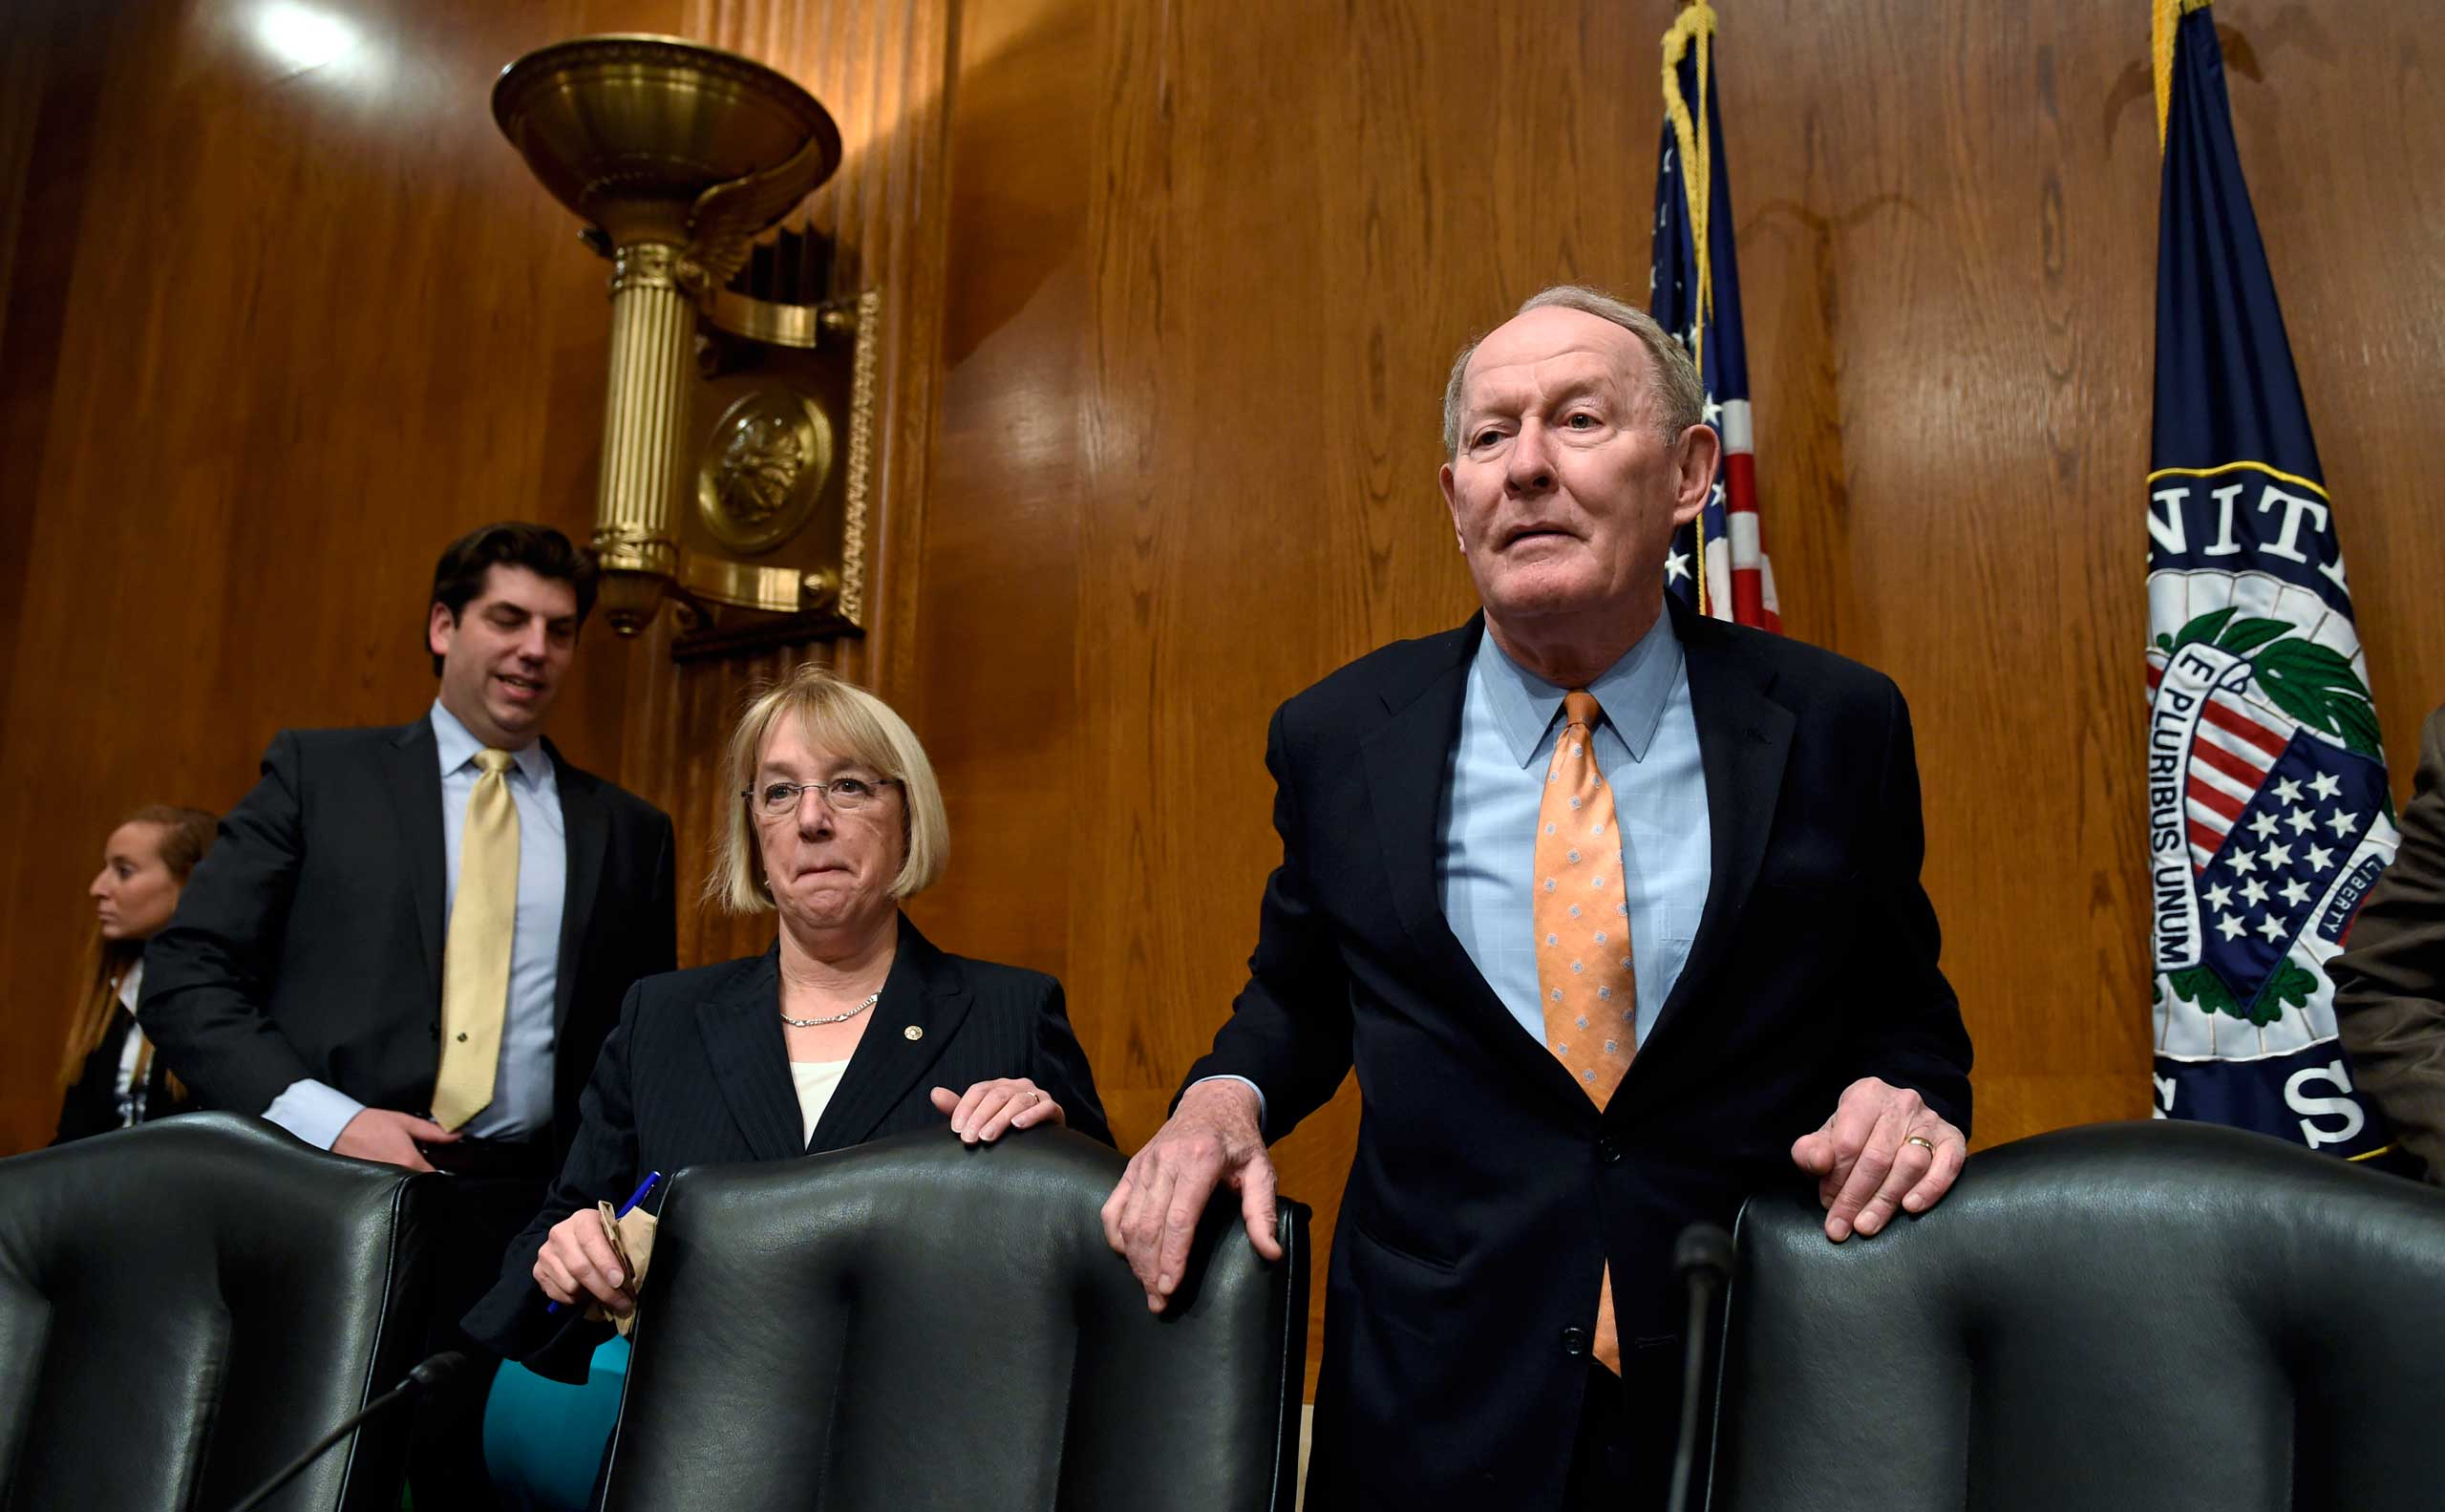 Senate Health, Education, Labor and Pensions Committee Chairman Sen. Lamar Alexander, R-Tenn., right, and the committee's ranking member Sen. Patty Murray, D-Wash., arrive on Capitol Hill in Washington, Wednesday, Jan. 21, 2015, for the committee's hearing looking at ways to fix the No Child Left Behind law.